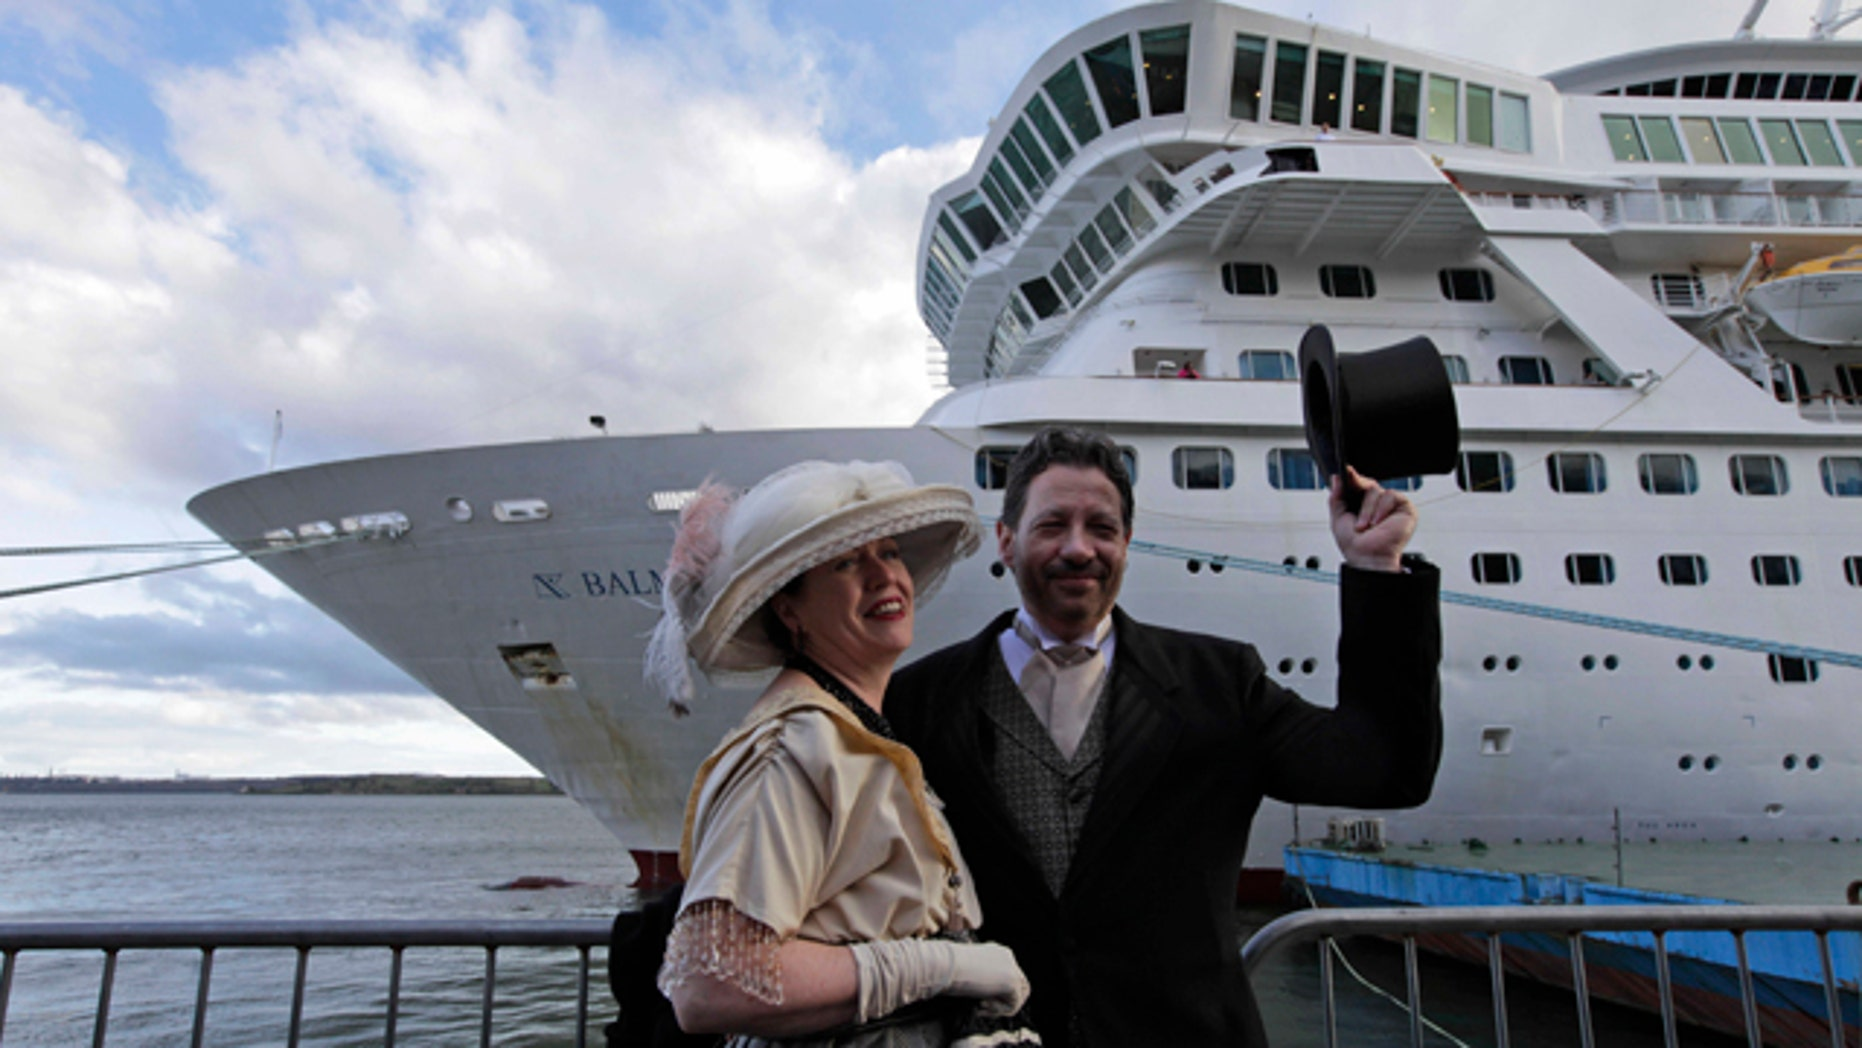 April 9, 2012: Mary Beth Crocker, left, and her husband Tom Dearing from Newport Ky. pose for pictures in period costume as they disembark the MS Balmoral Titanic memorial cruise ship at its first stop in Cobh, Ireland.